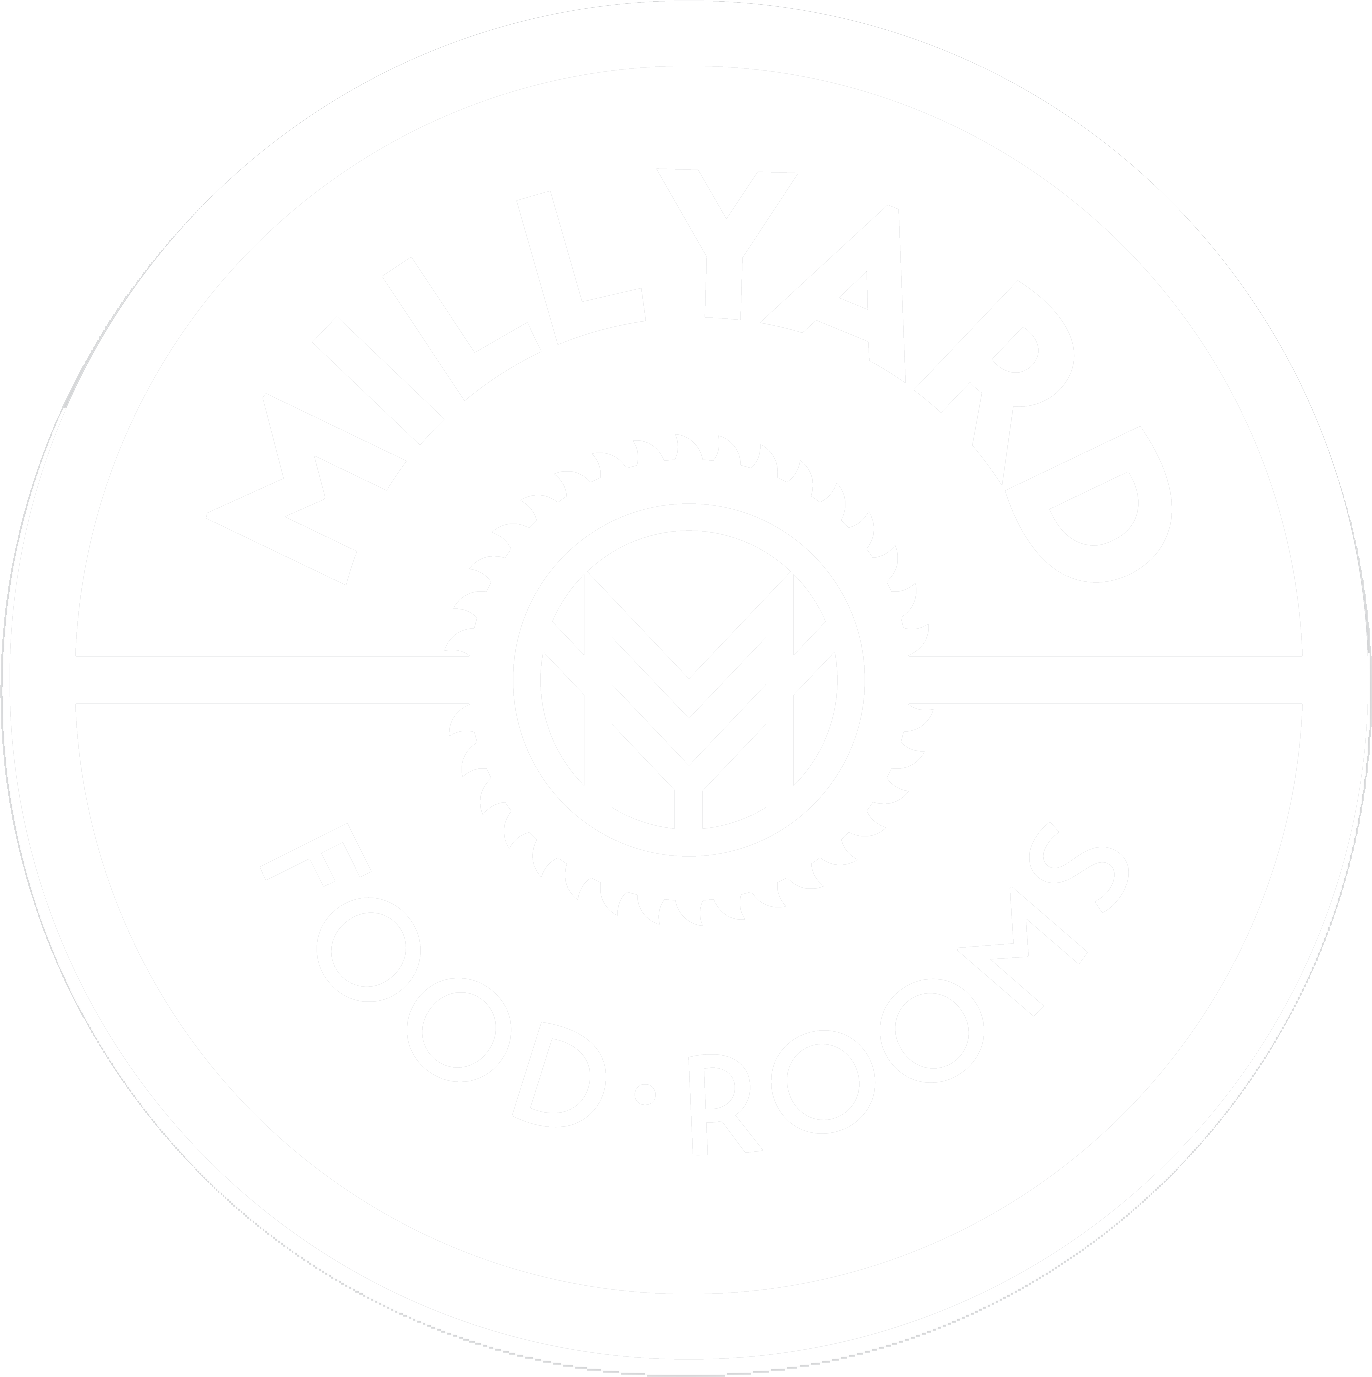 The Millyard logo